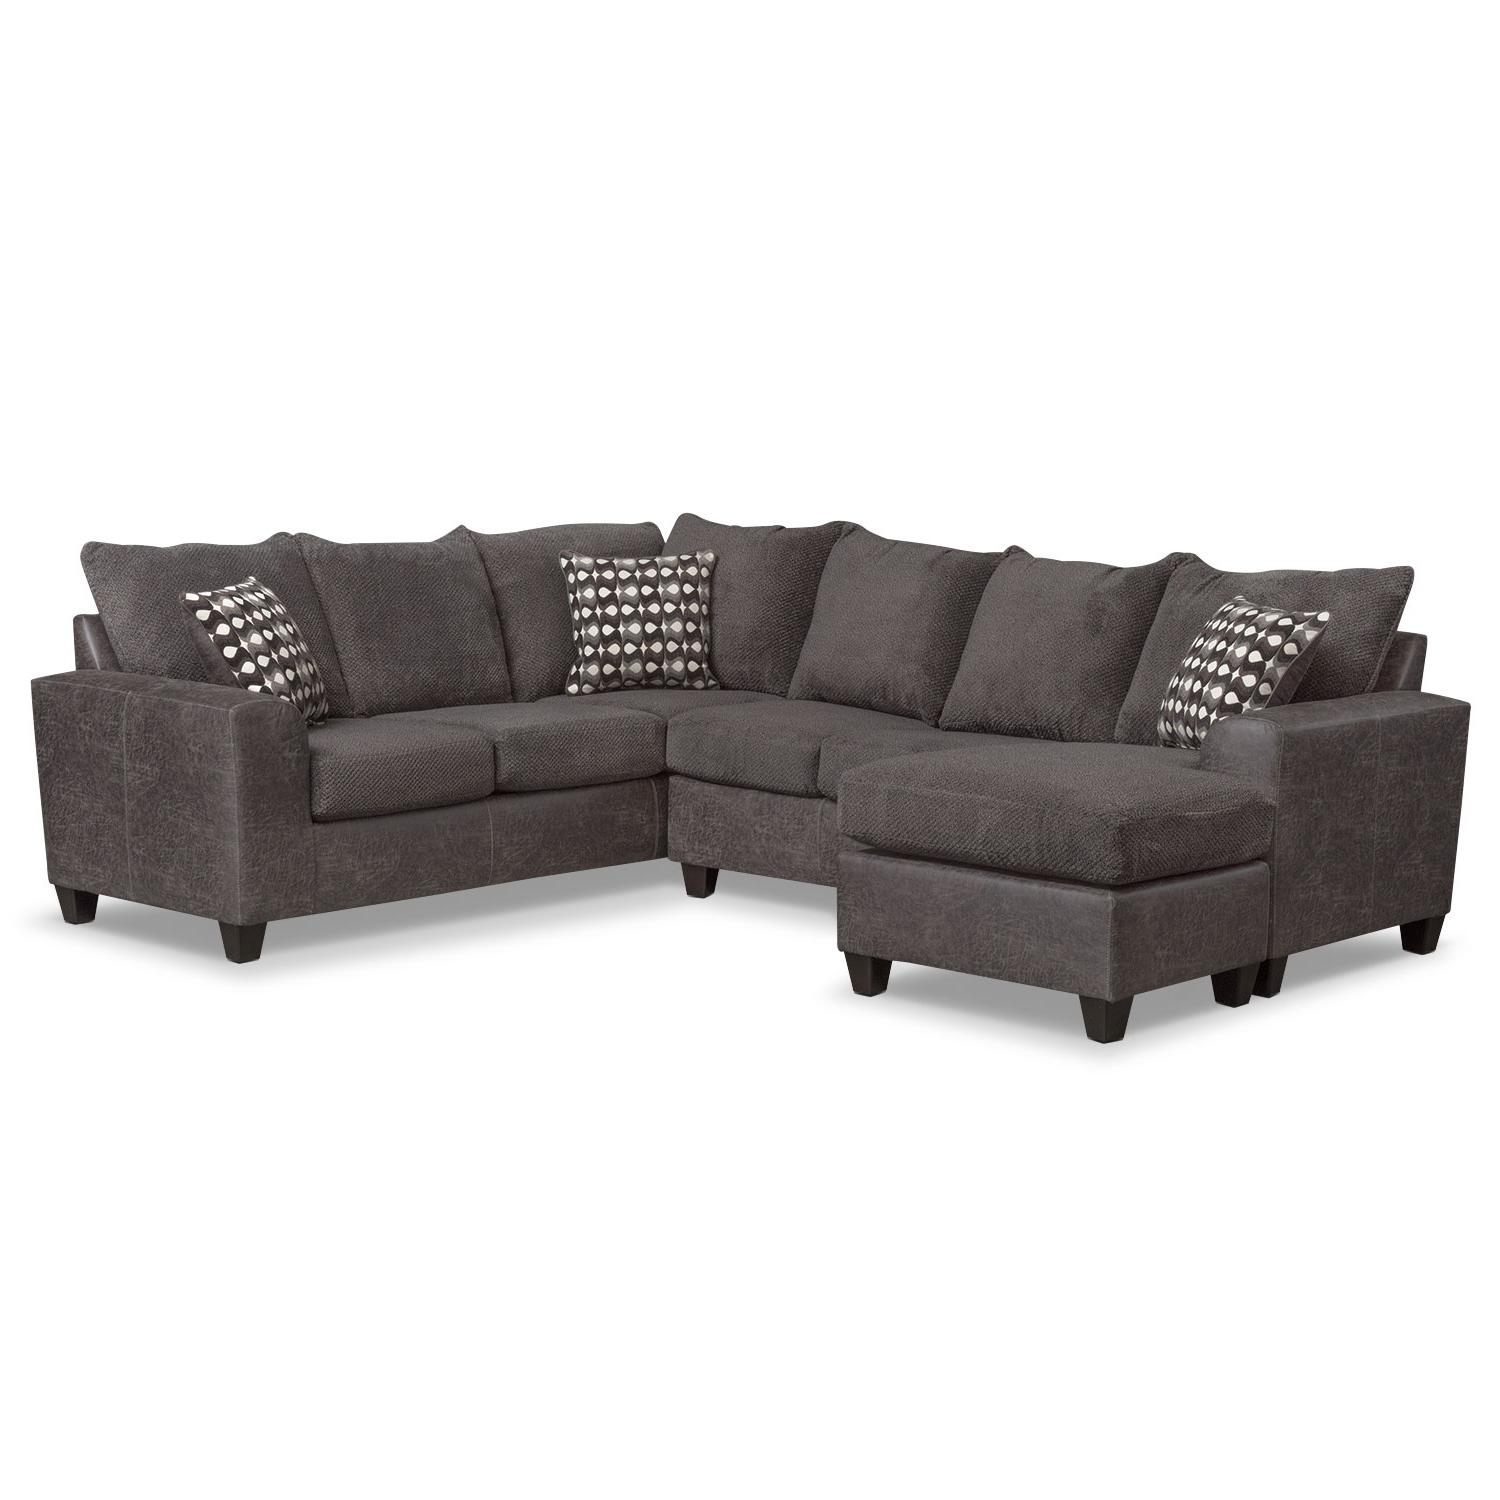 Value City Inside Grand Rapids Mi Sectional Sofas (View 12 of 15)